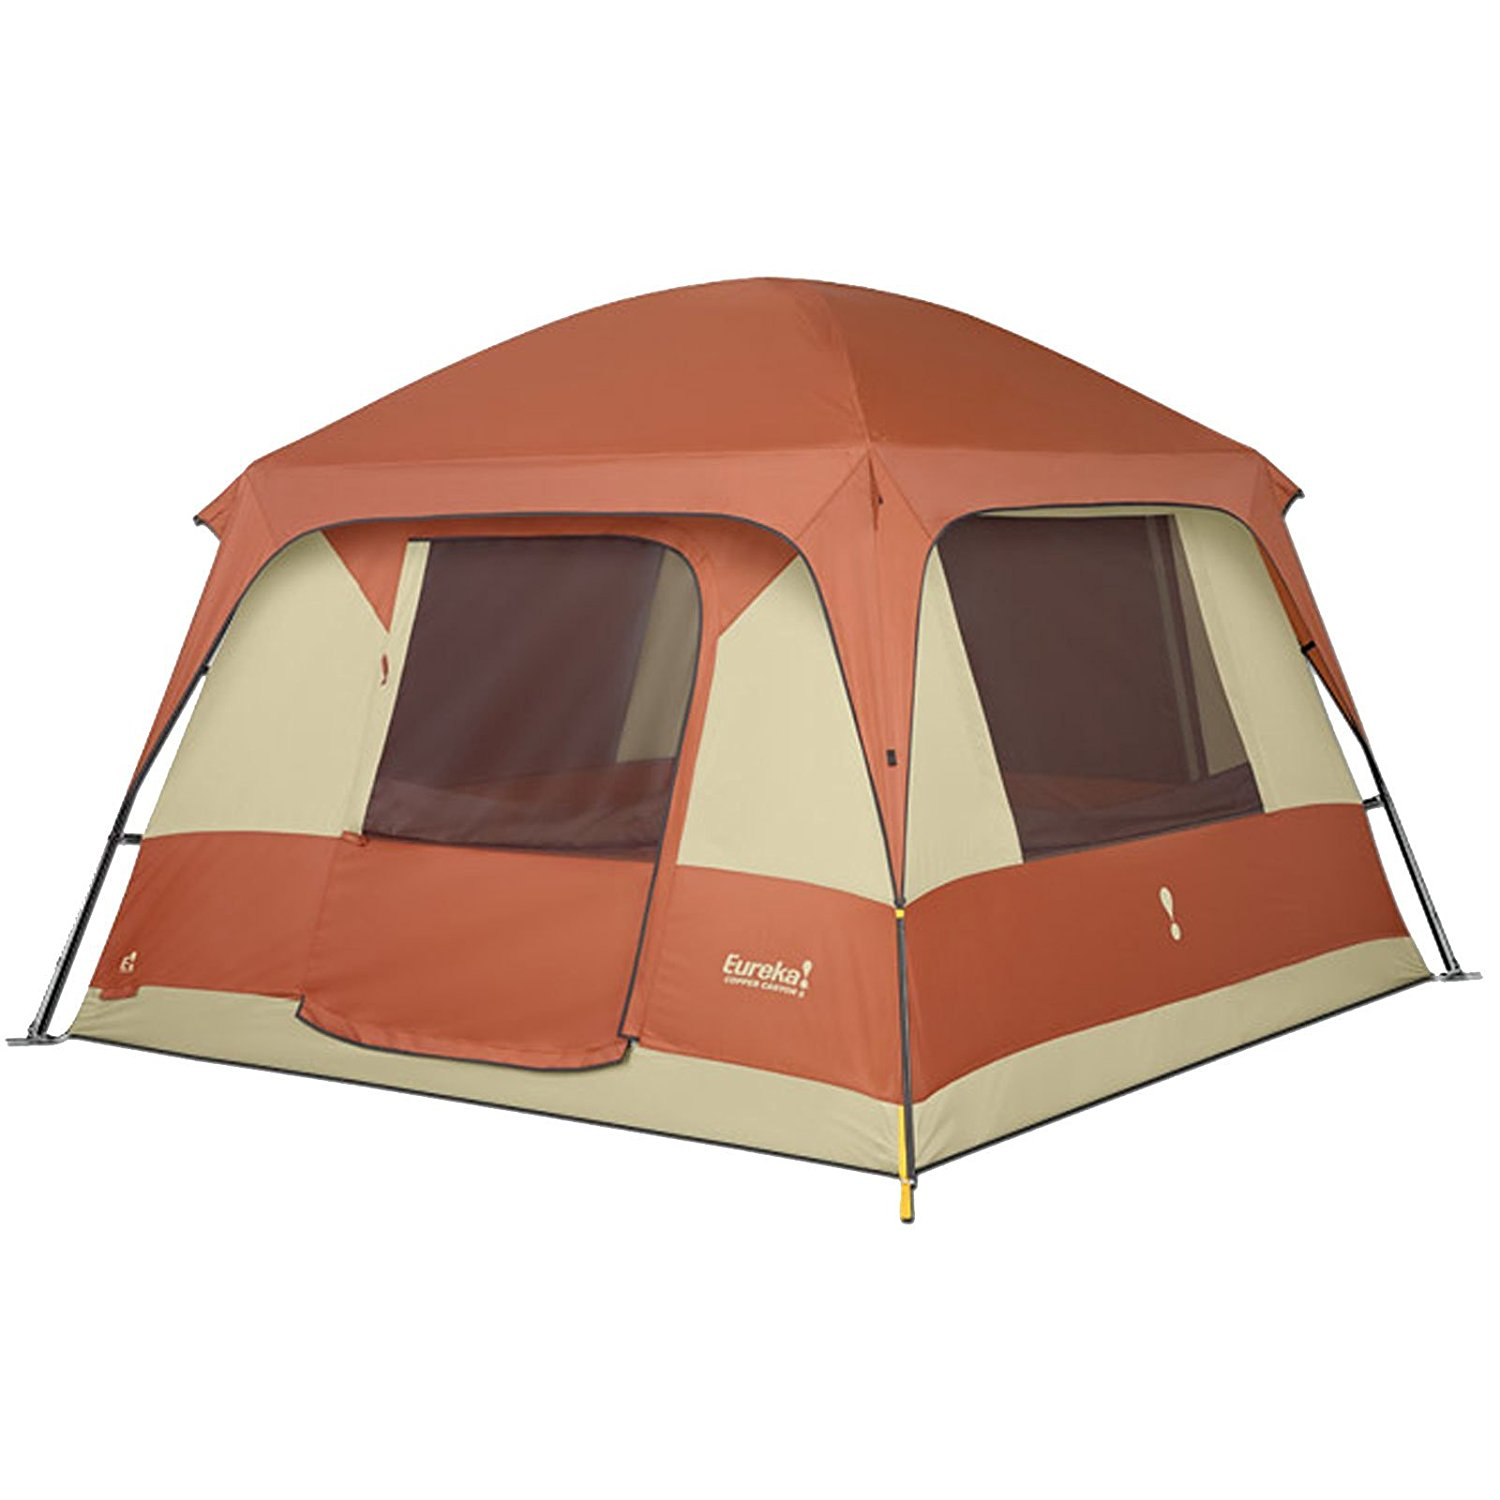 eureka copper canyon 6 is the best 6 person highest rated 6 man tent 6 person tent and six person tent for family camping